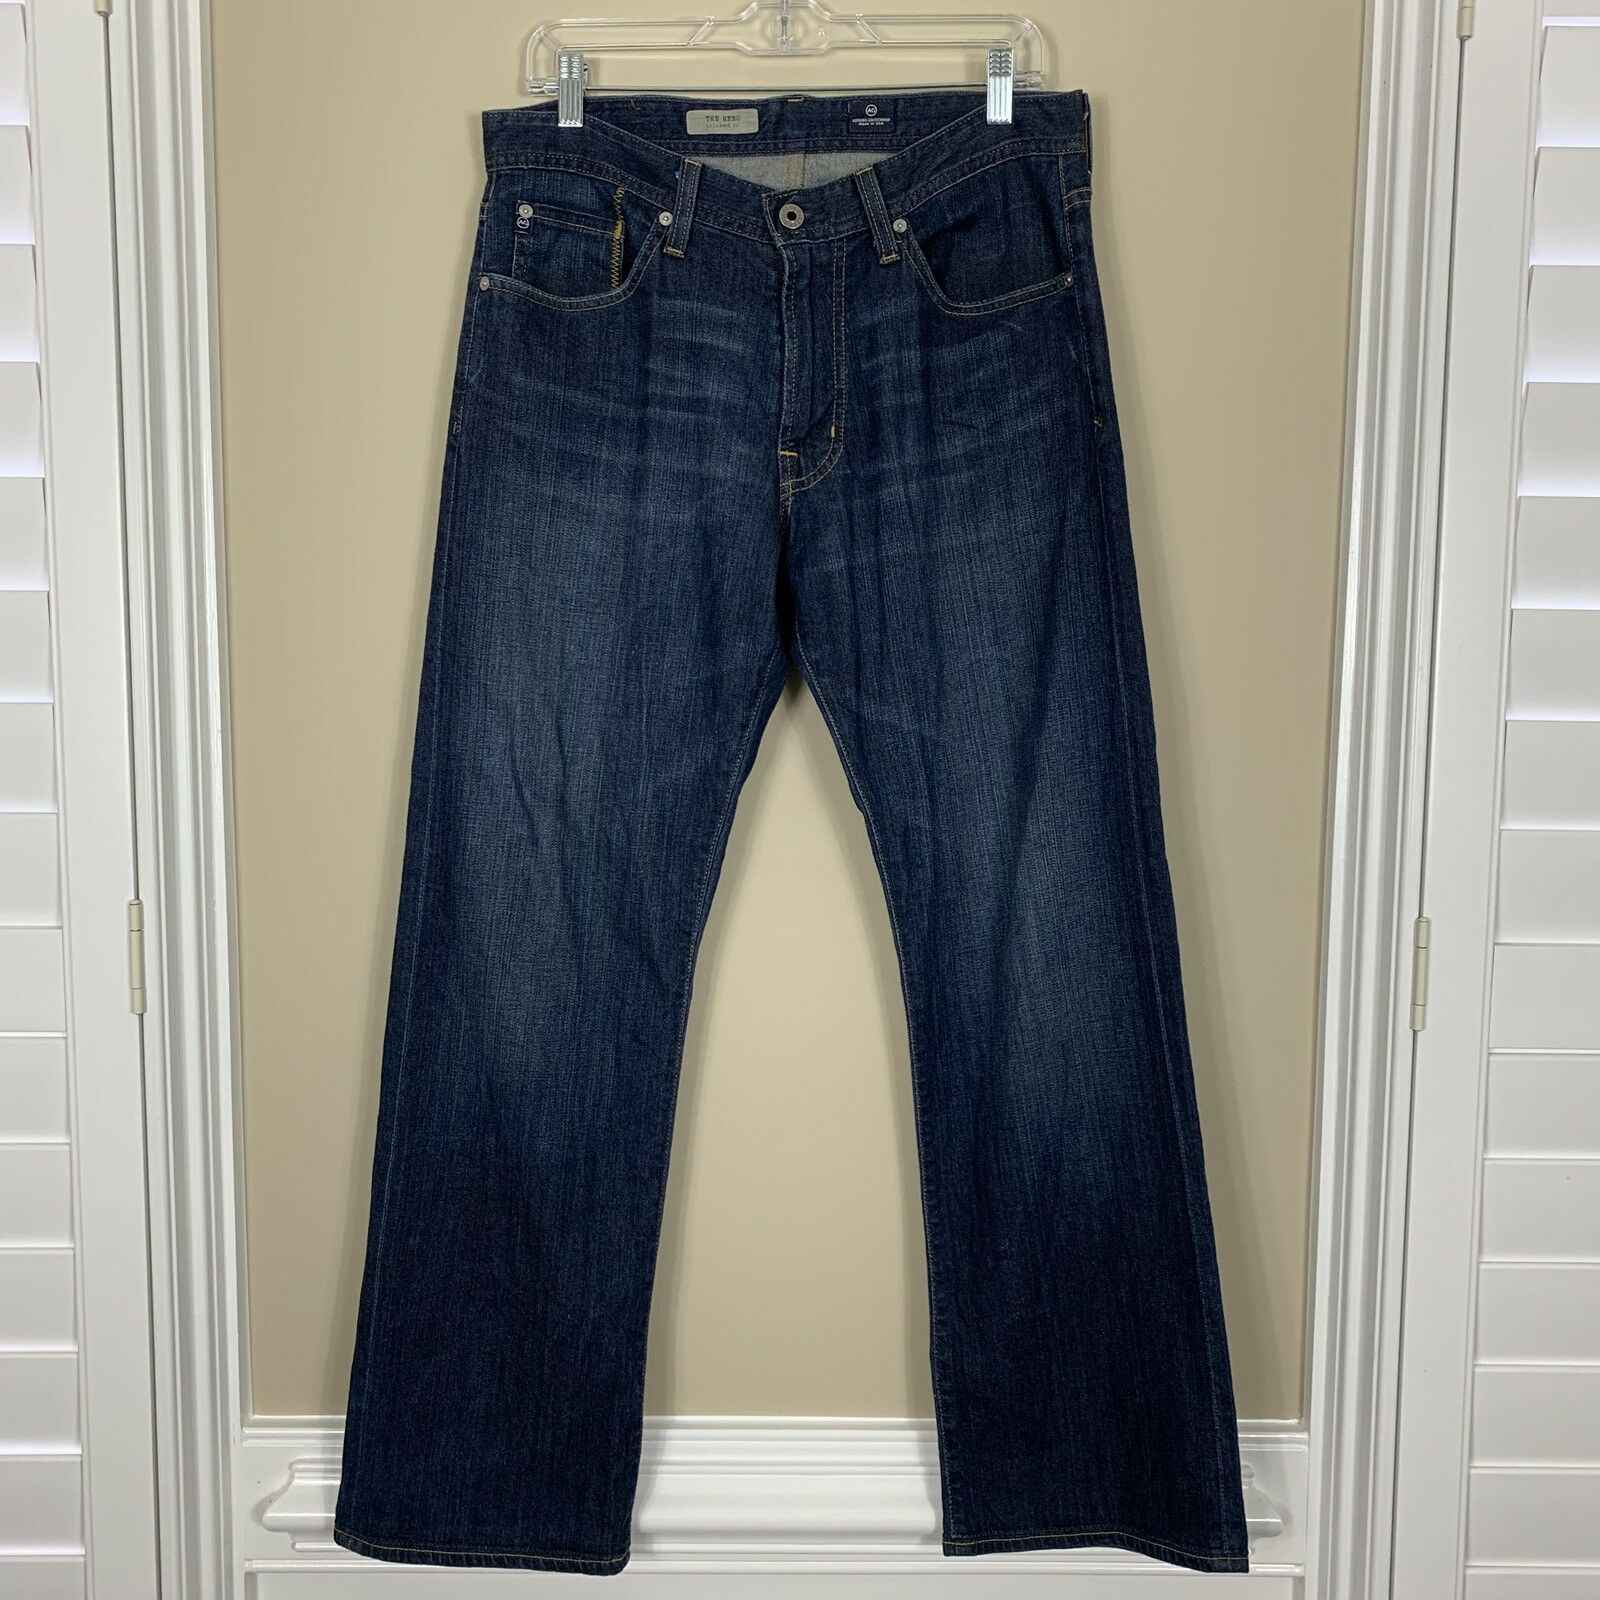 Adriano goldschmied AG The Hero Men's Jeans Size 31x30 Relaxed Fit Denim